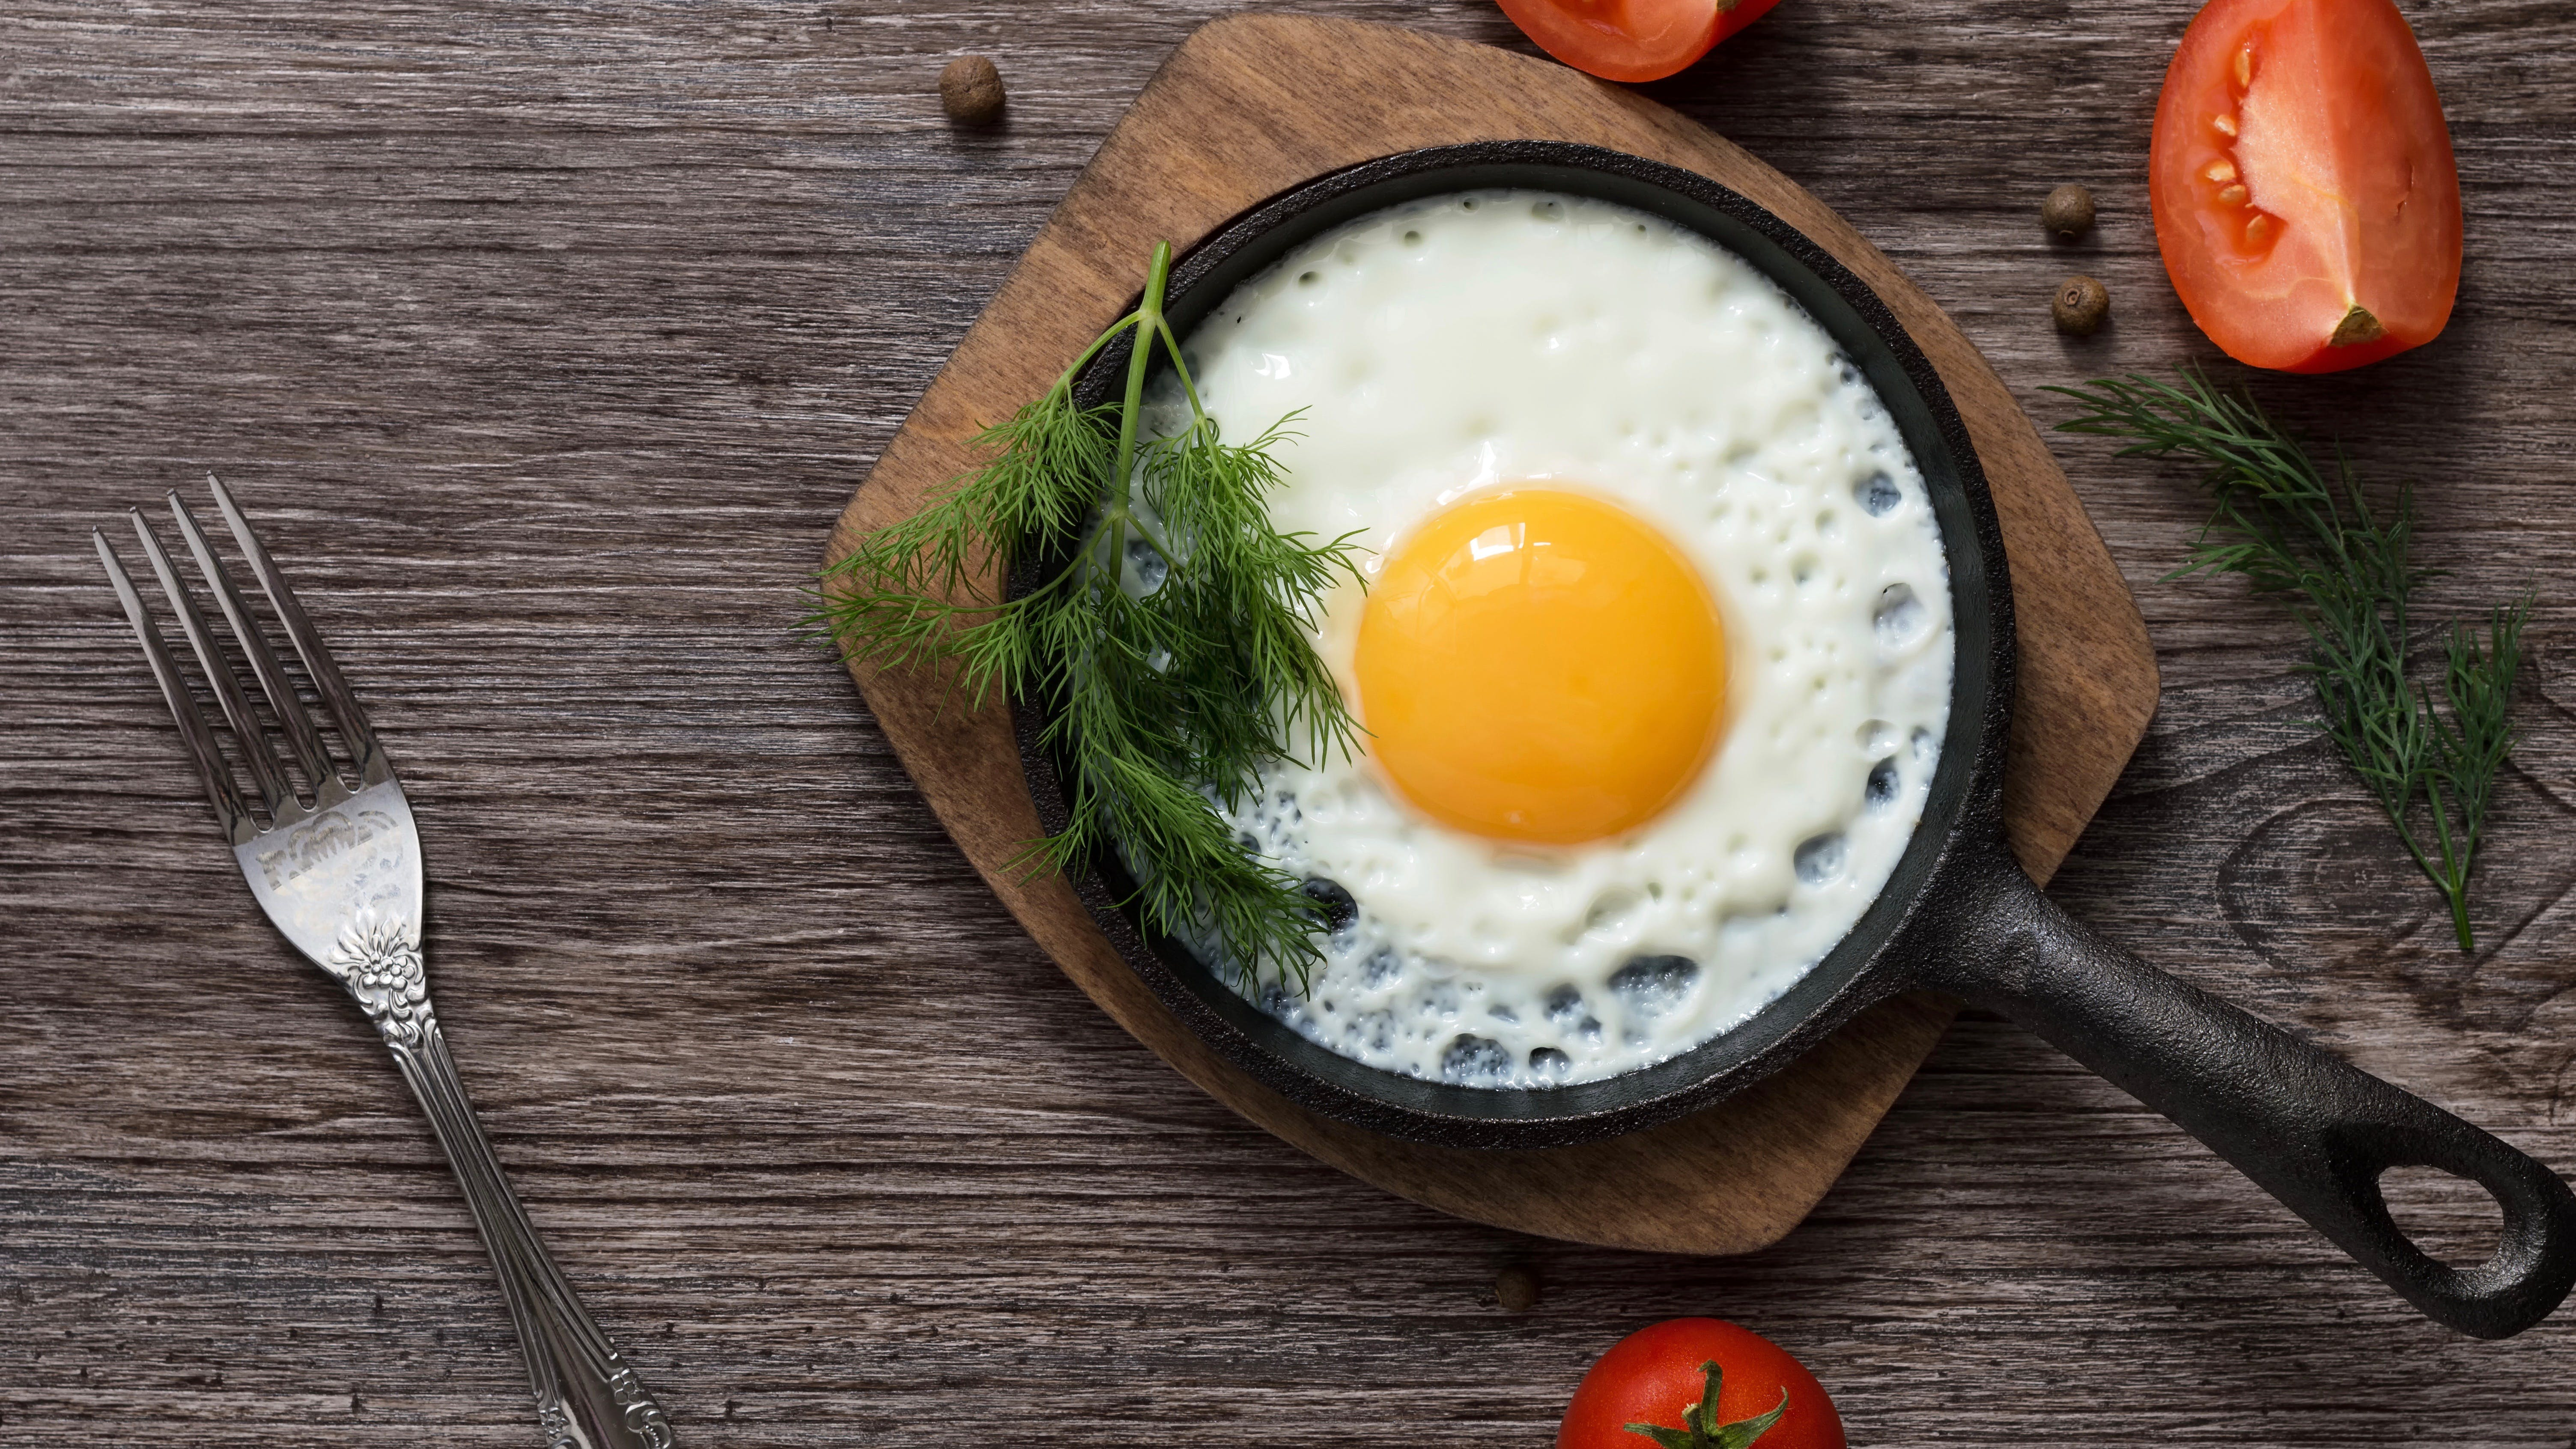 Are eggs linked to higher or lower rates of type 2 diabetes?